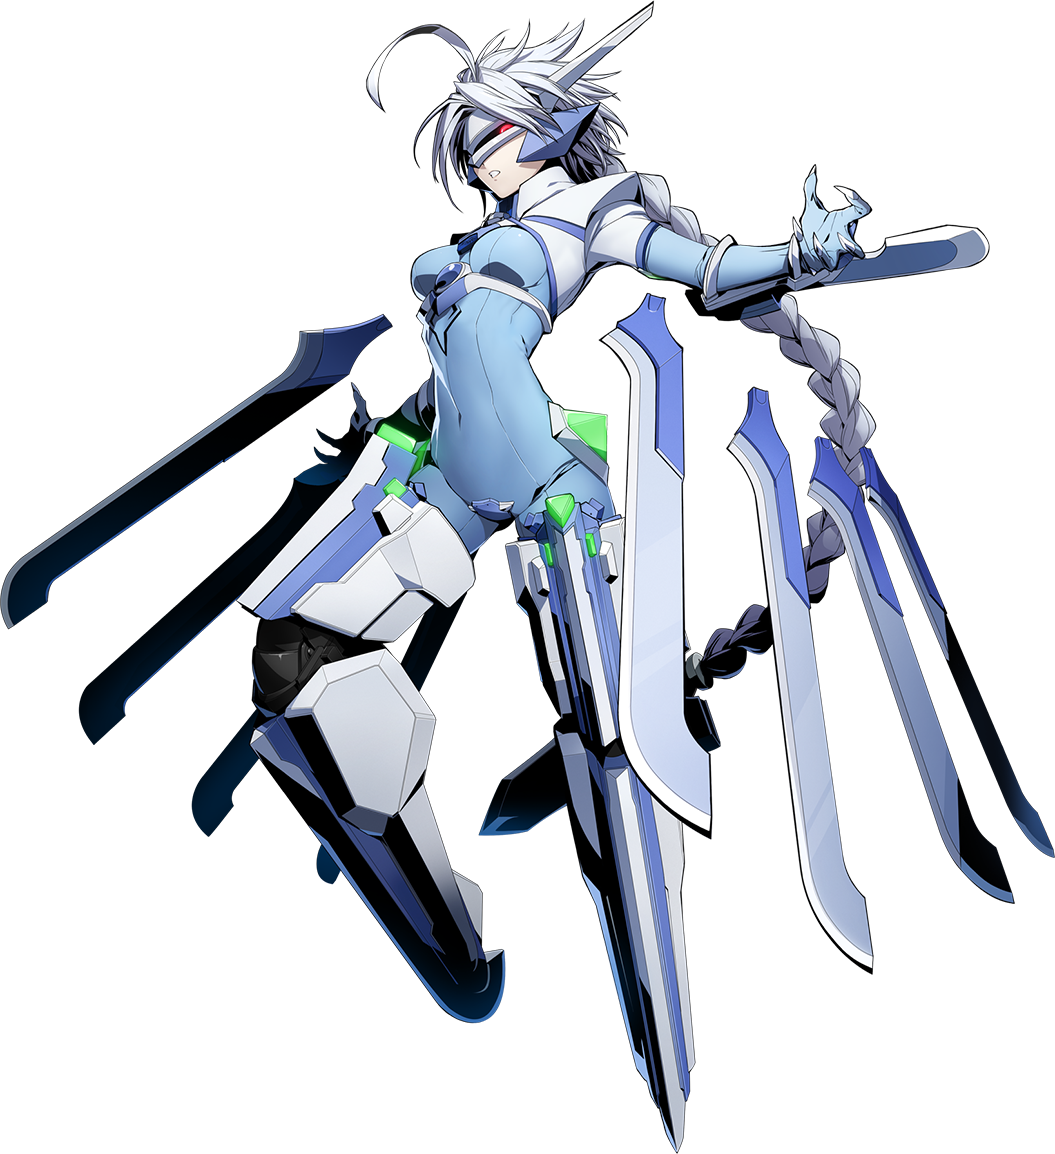 5e354d1c Nu-13 (BlazBlue Cross Tag Battle, Character Select Artwork)